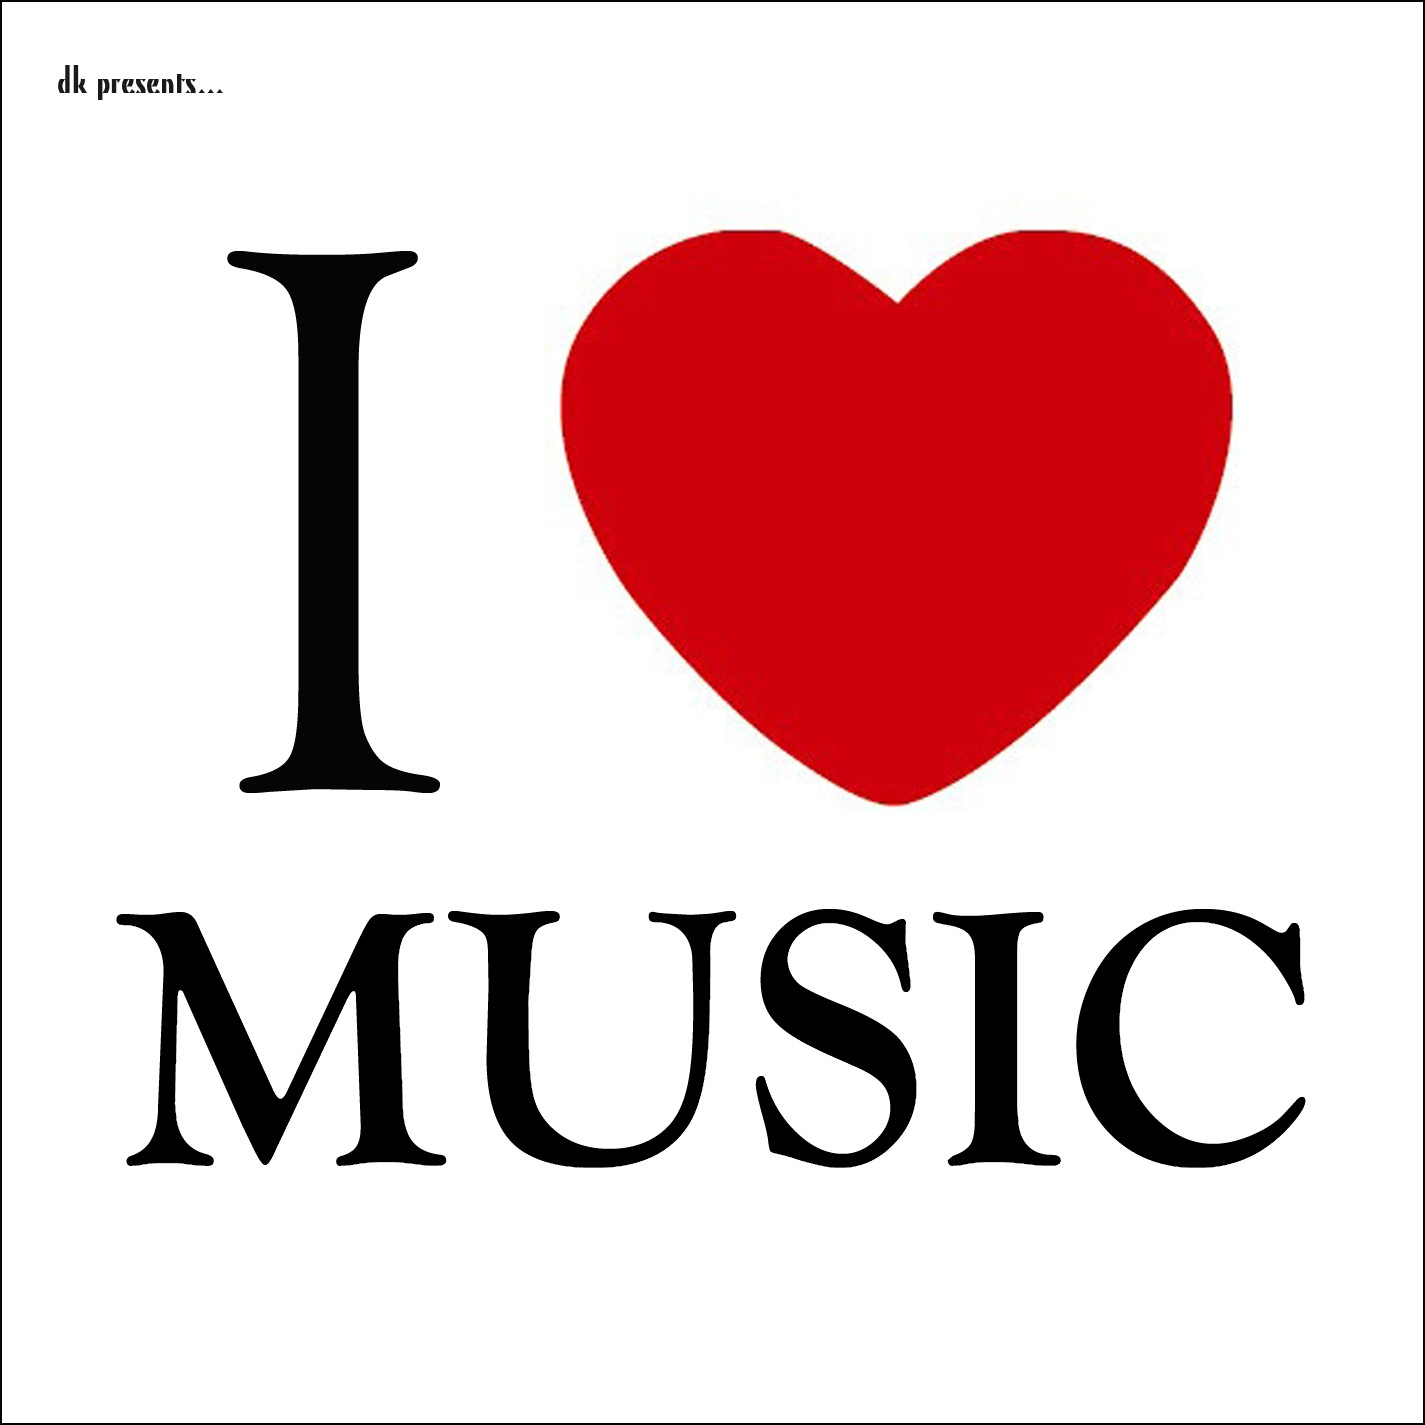 I love music clipart jpg library download I Love Music Clipart #1 | Clipart Panda - Free Clipart Images jpg library download